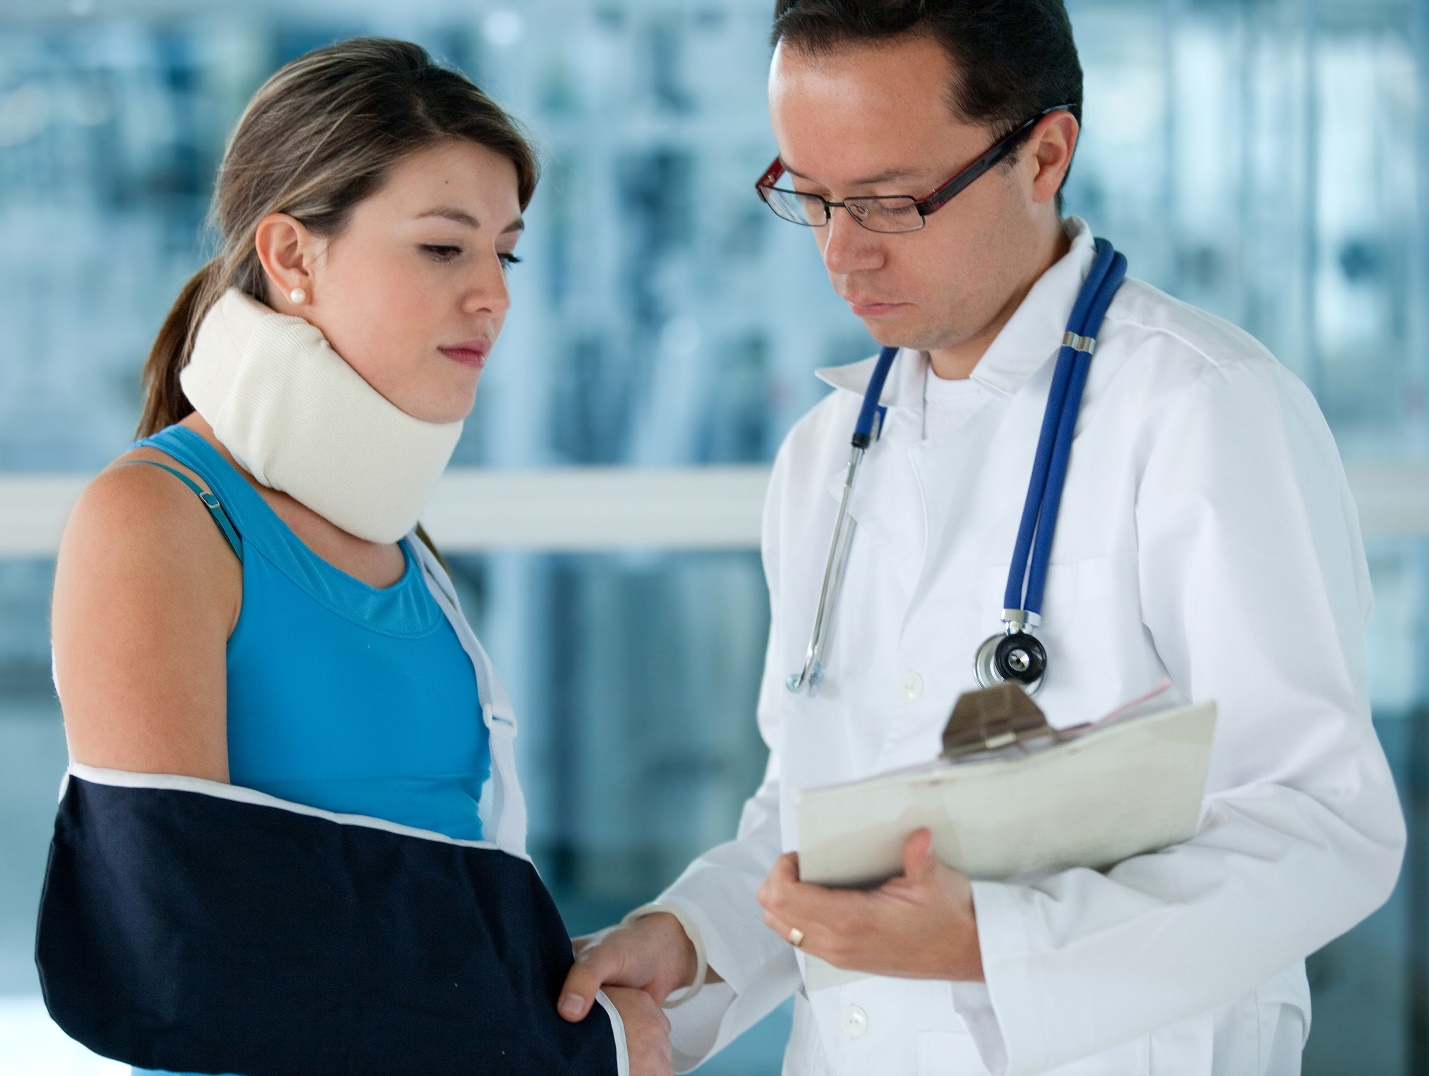 Kinds of Personal Injuries in Texas Law